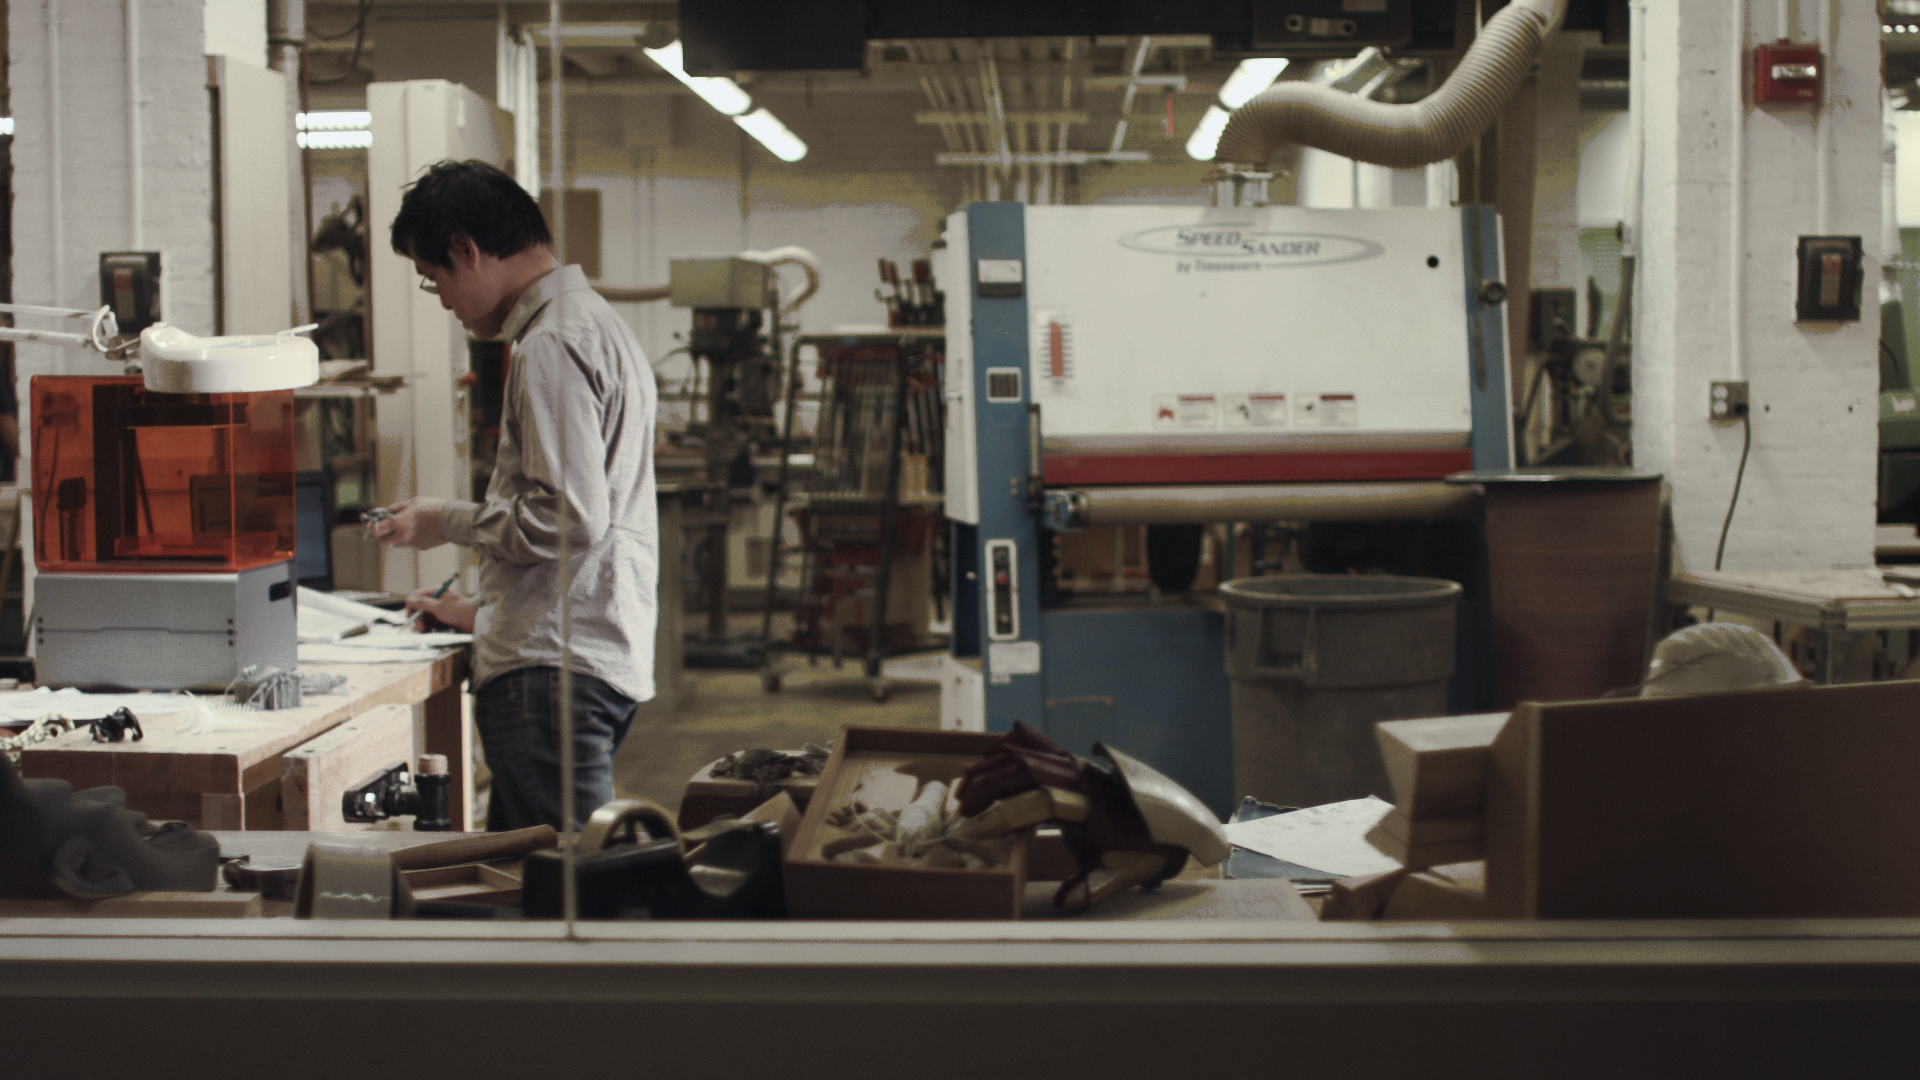 MIT Craftsman: An MIT alum, Brian hones his skills at the MIT Hobby Shop.